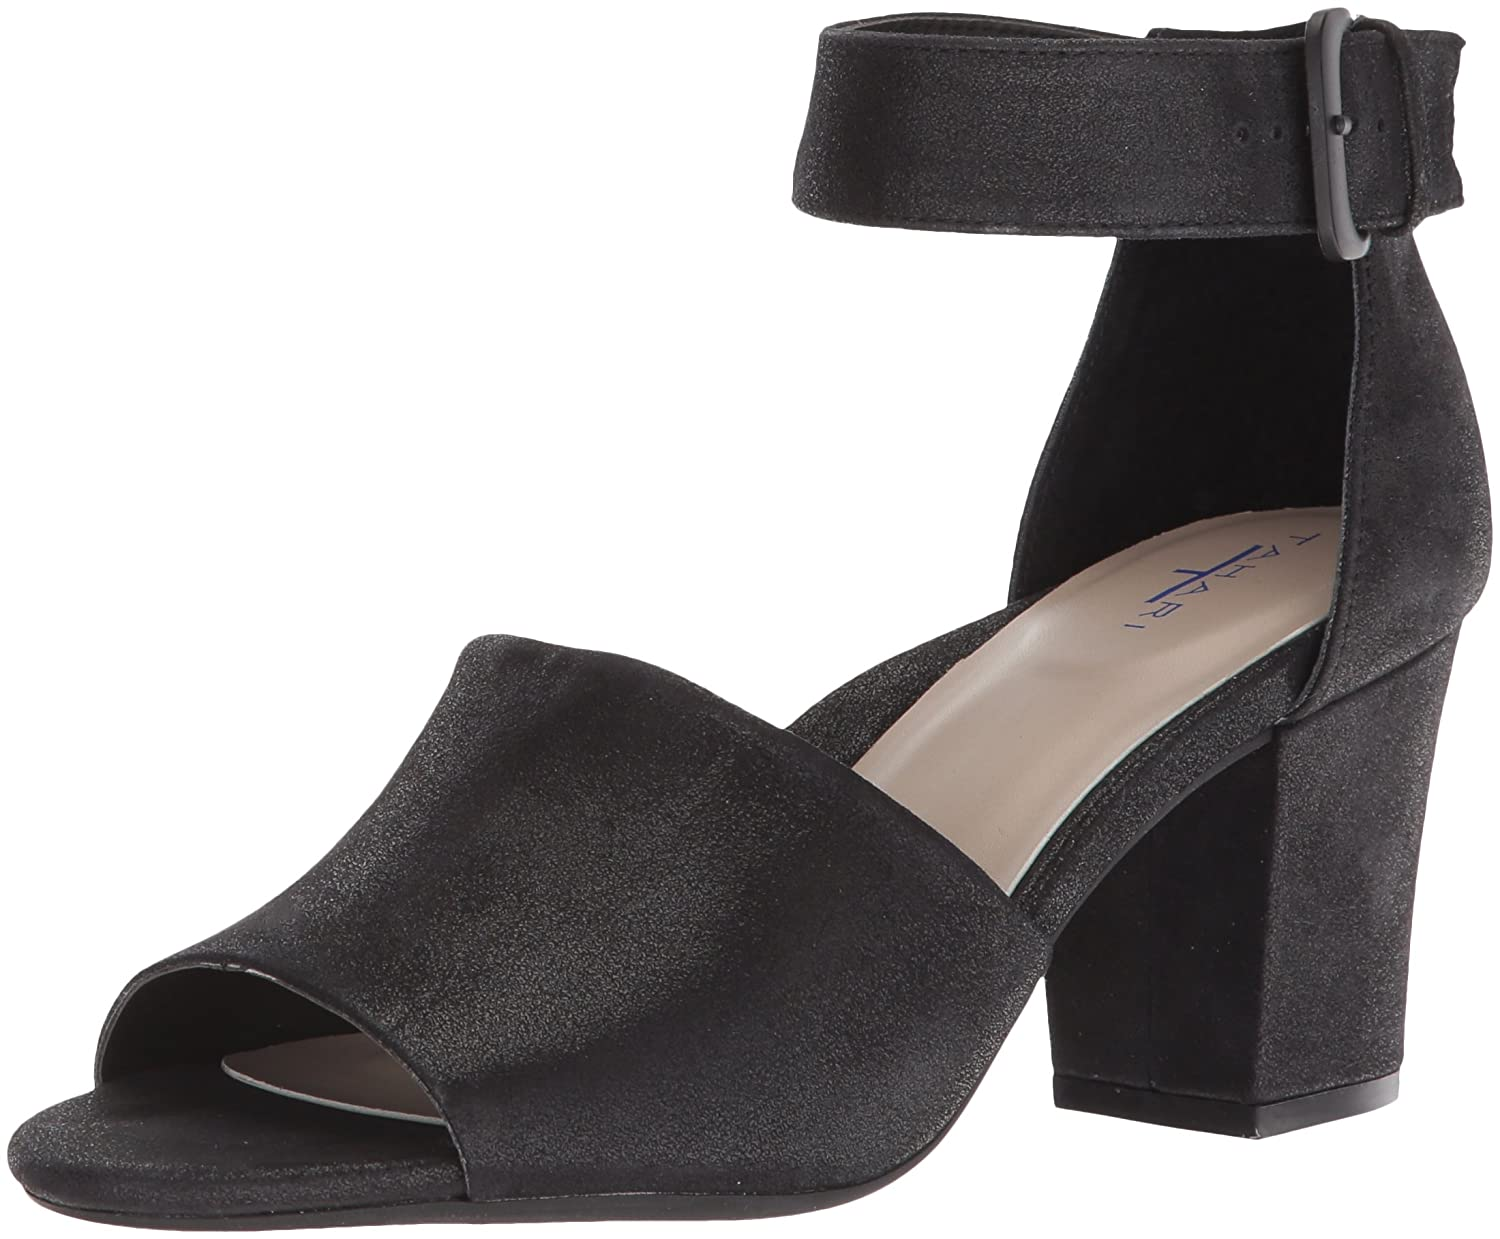 Tahari Women's Tt-Pennie Heeled Sandal B0773JTWPW 6 B(M) US|Black